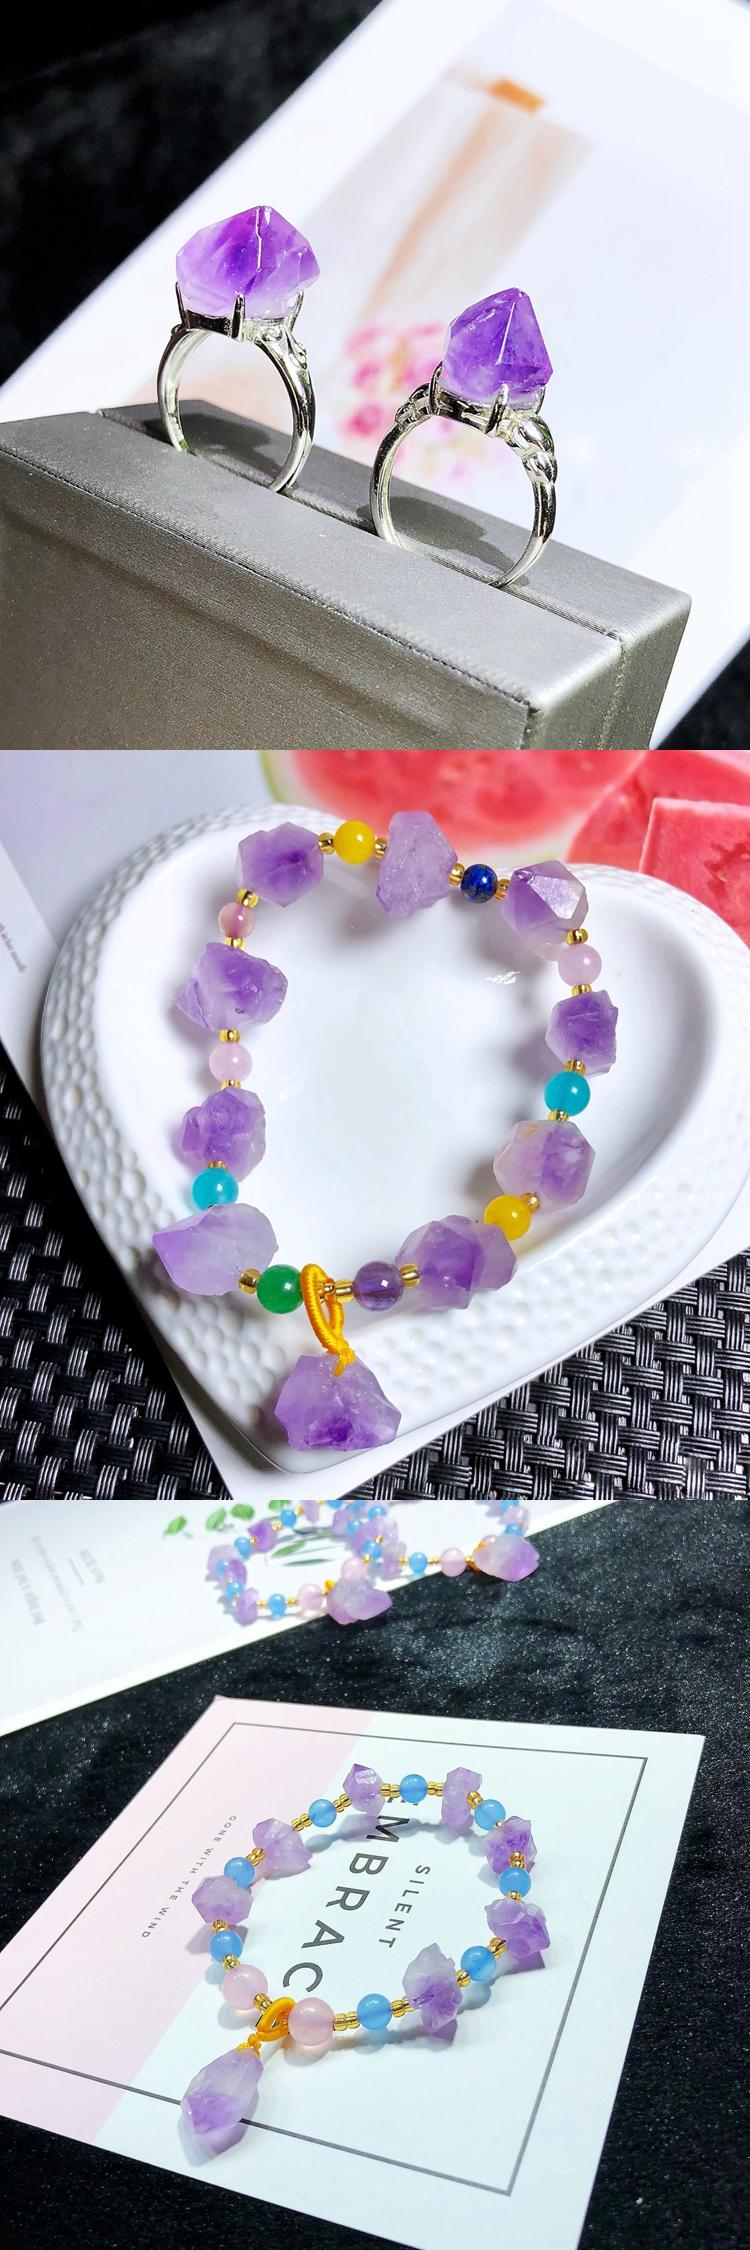 Love gifts for valentine's raw amethystjewelry bracelets amethyst jewelry bracelet customized women